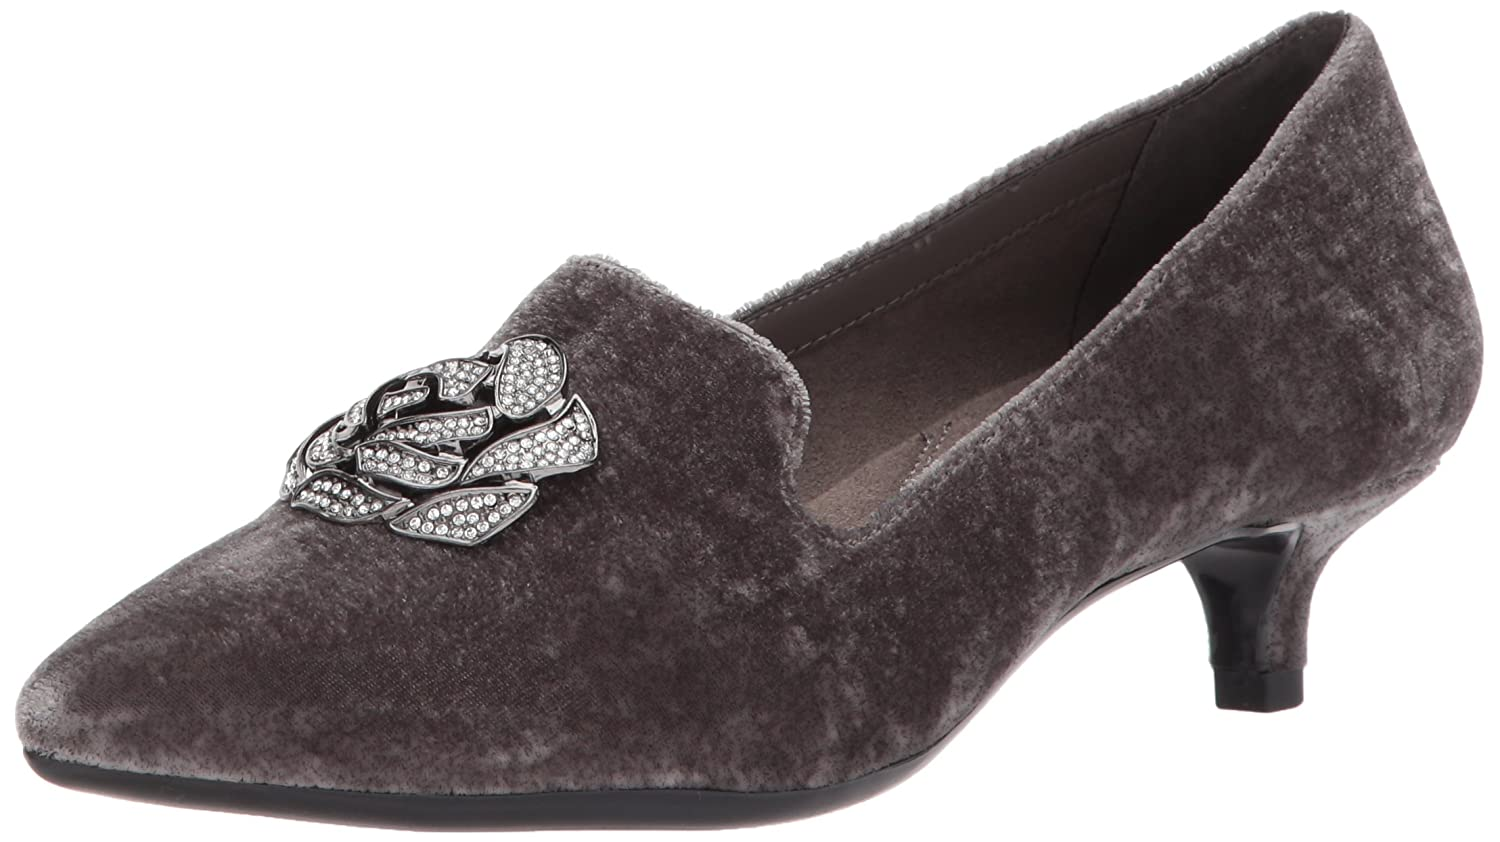 Aerosoles Women's Best Dressed Pump B06Y5YDT6W 10.5 B(M) US|Grey Fabric